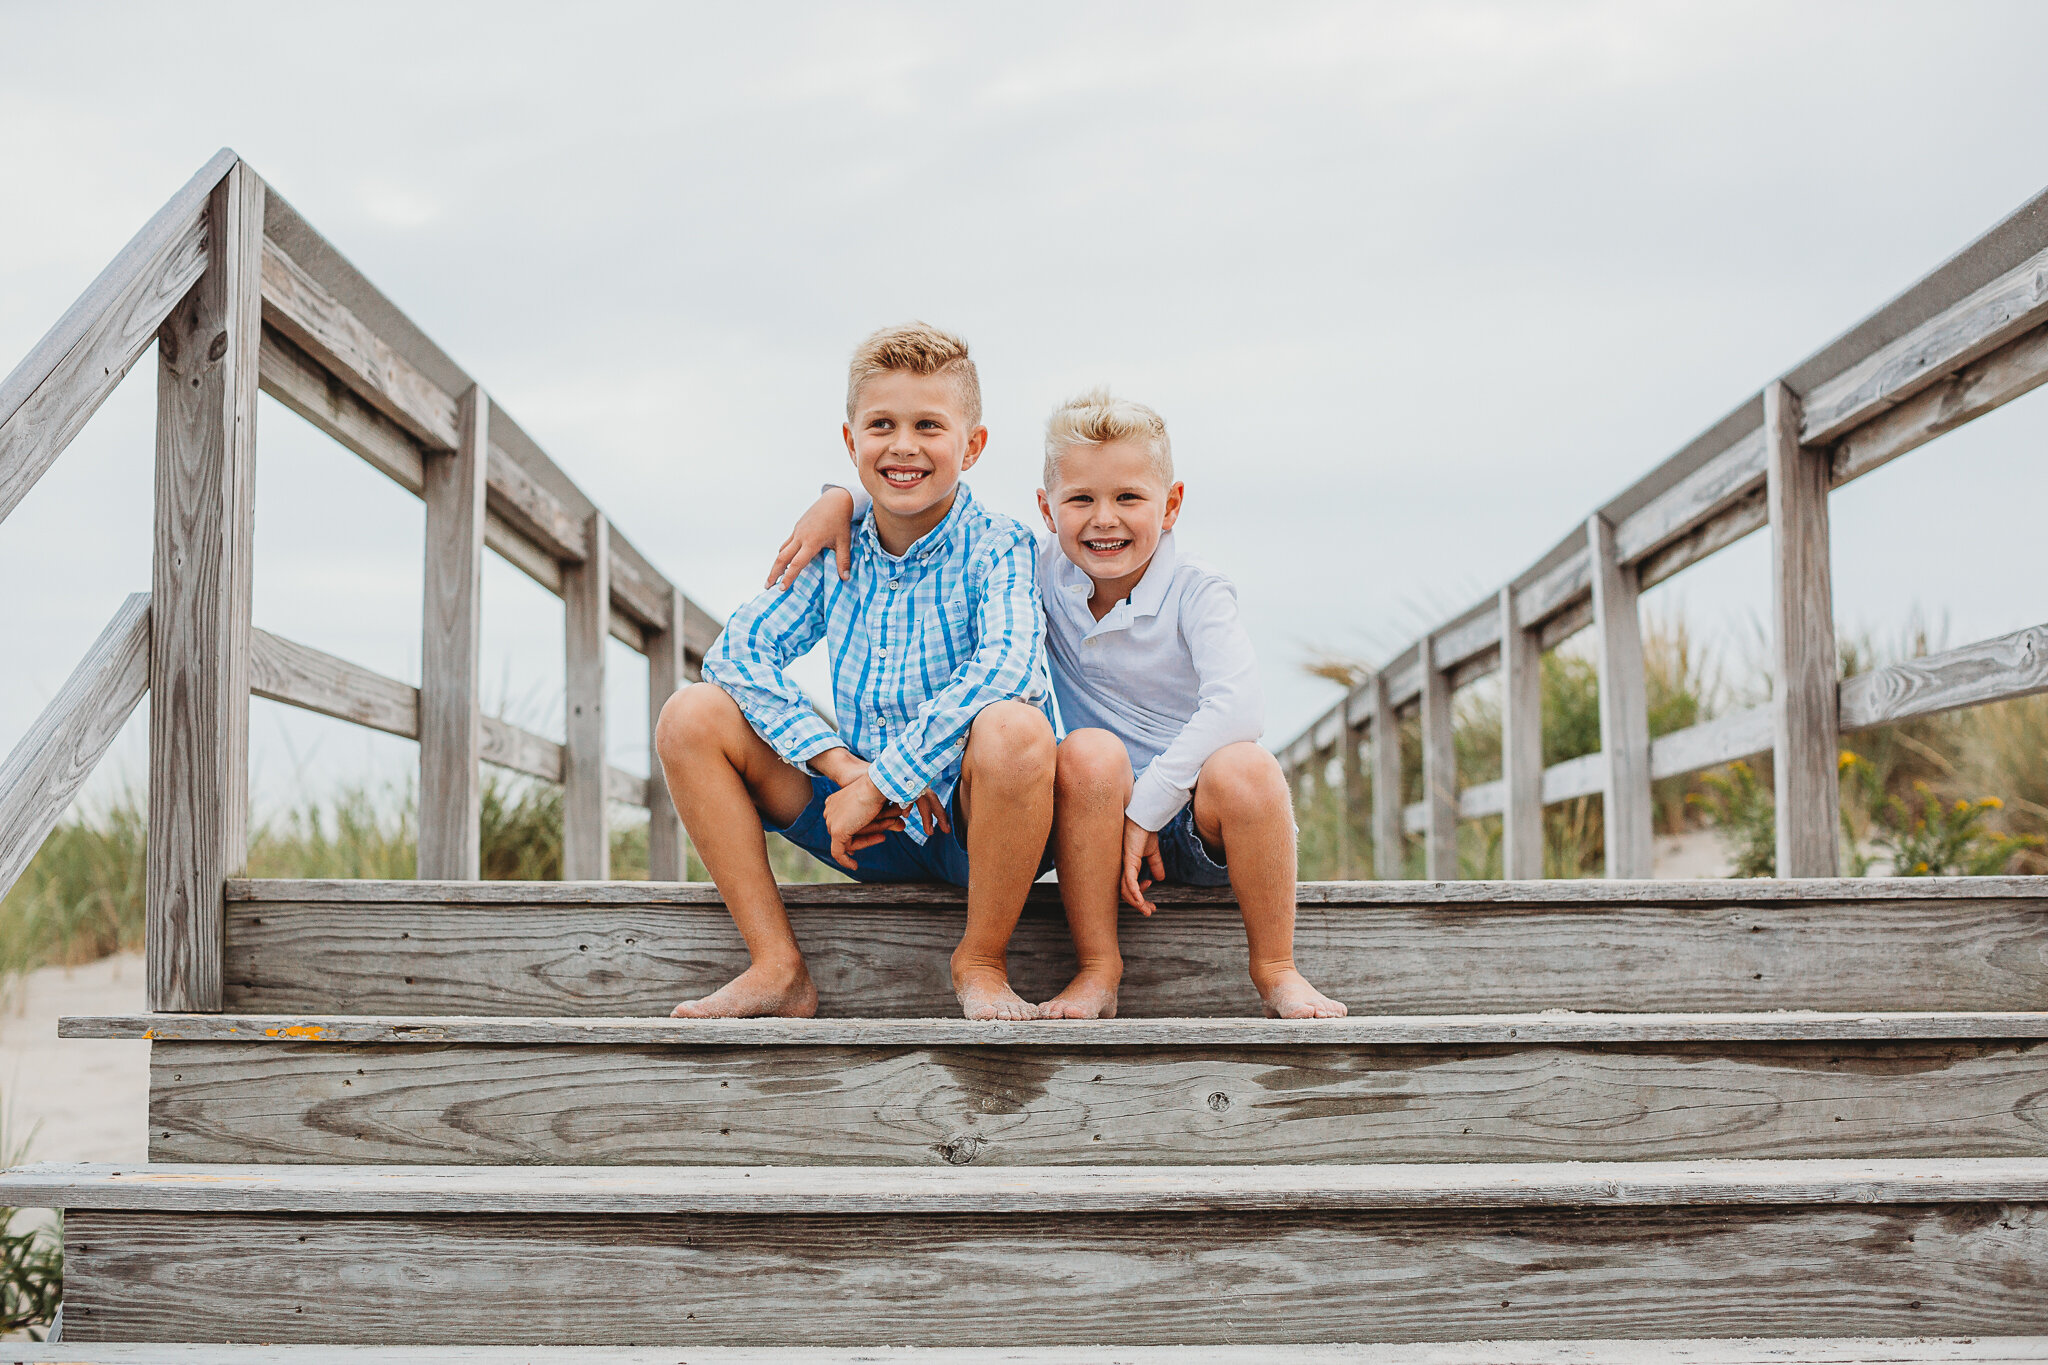 Brothers sitting on the boardwalk at Crane Beach. Cloudy days can be awesome for family photos in Greater Boston because you can face in any direction and capture beautiful photos! This image wouldn't have been possible on a sunny day.